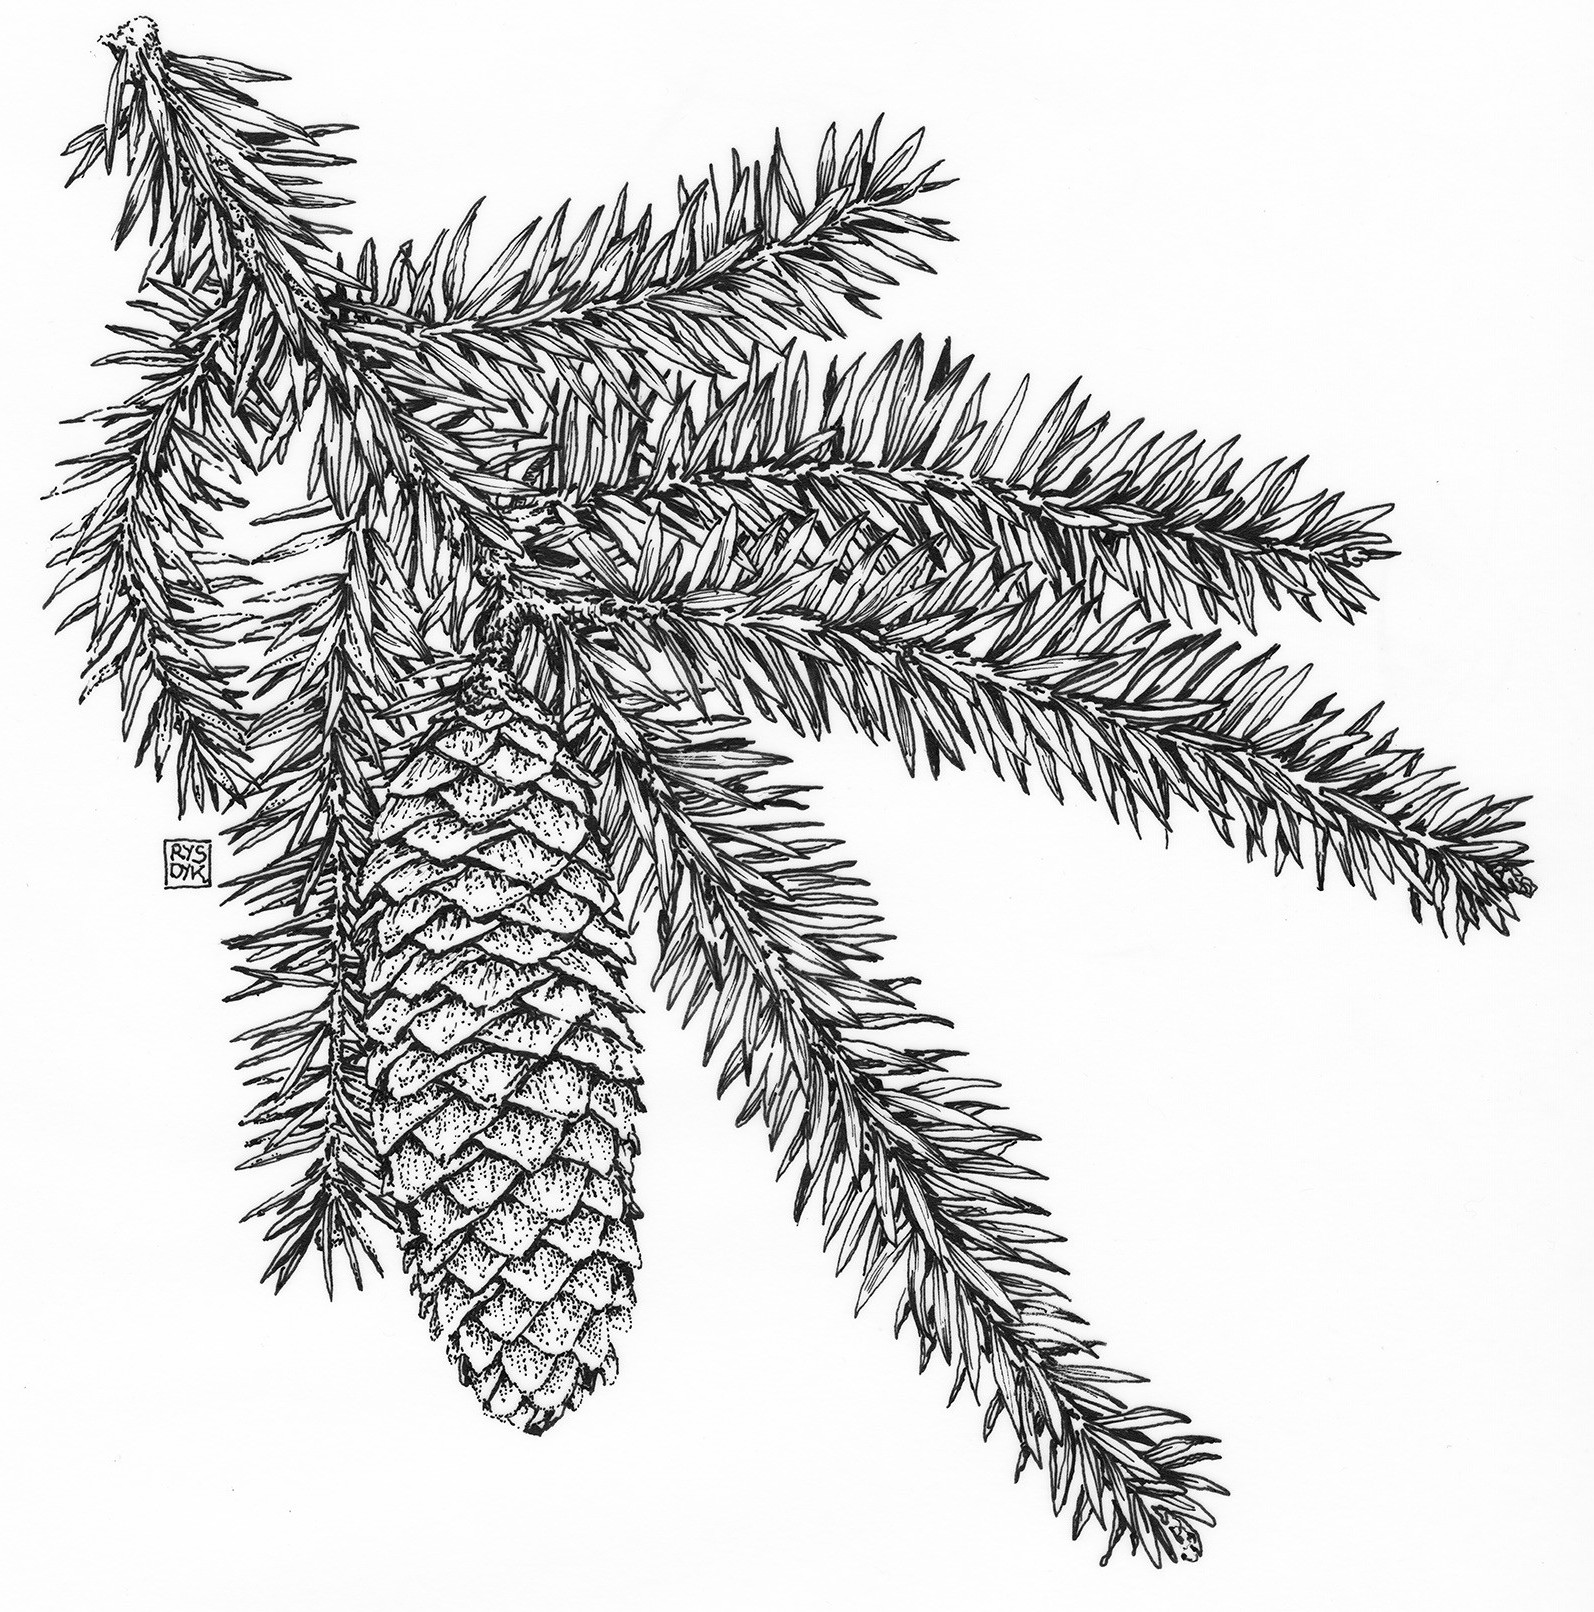 Fig. 16.1 Norway Spruce copy